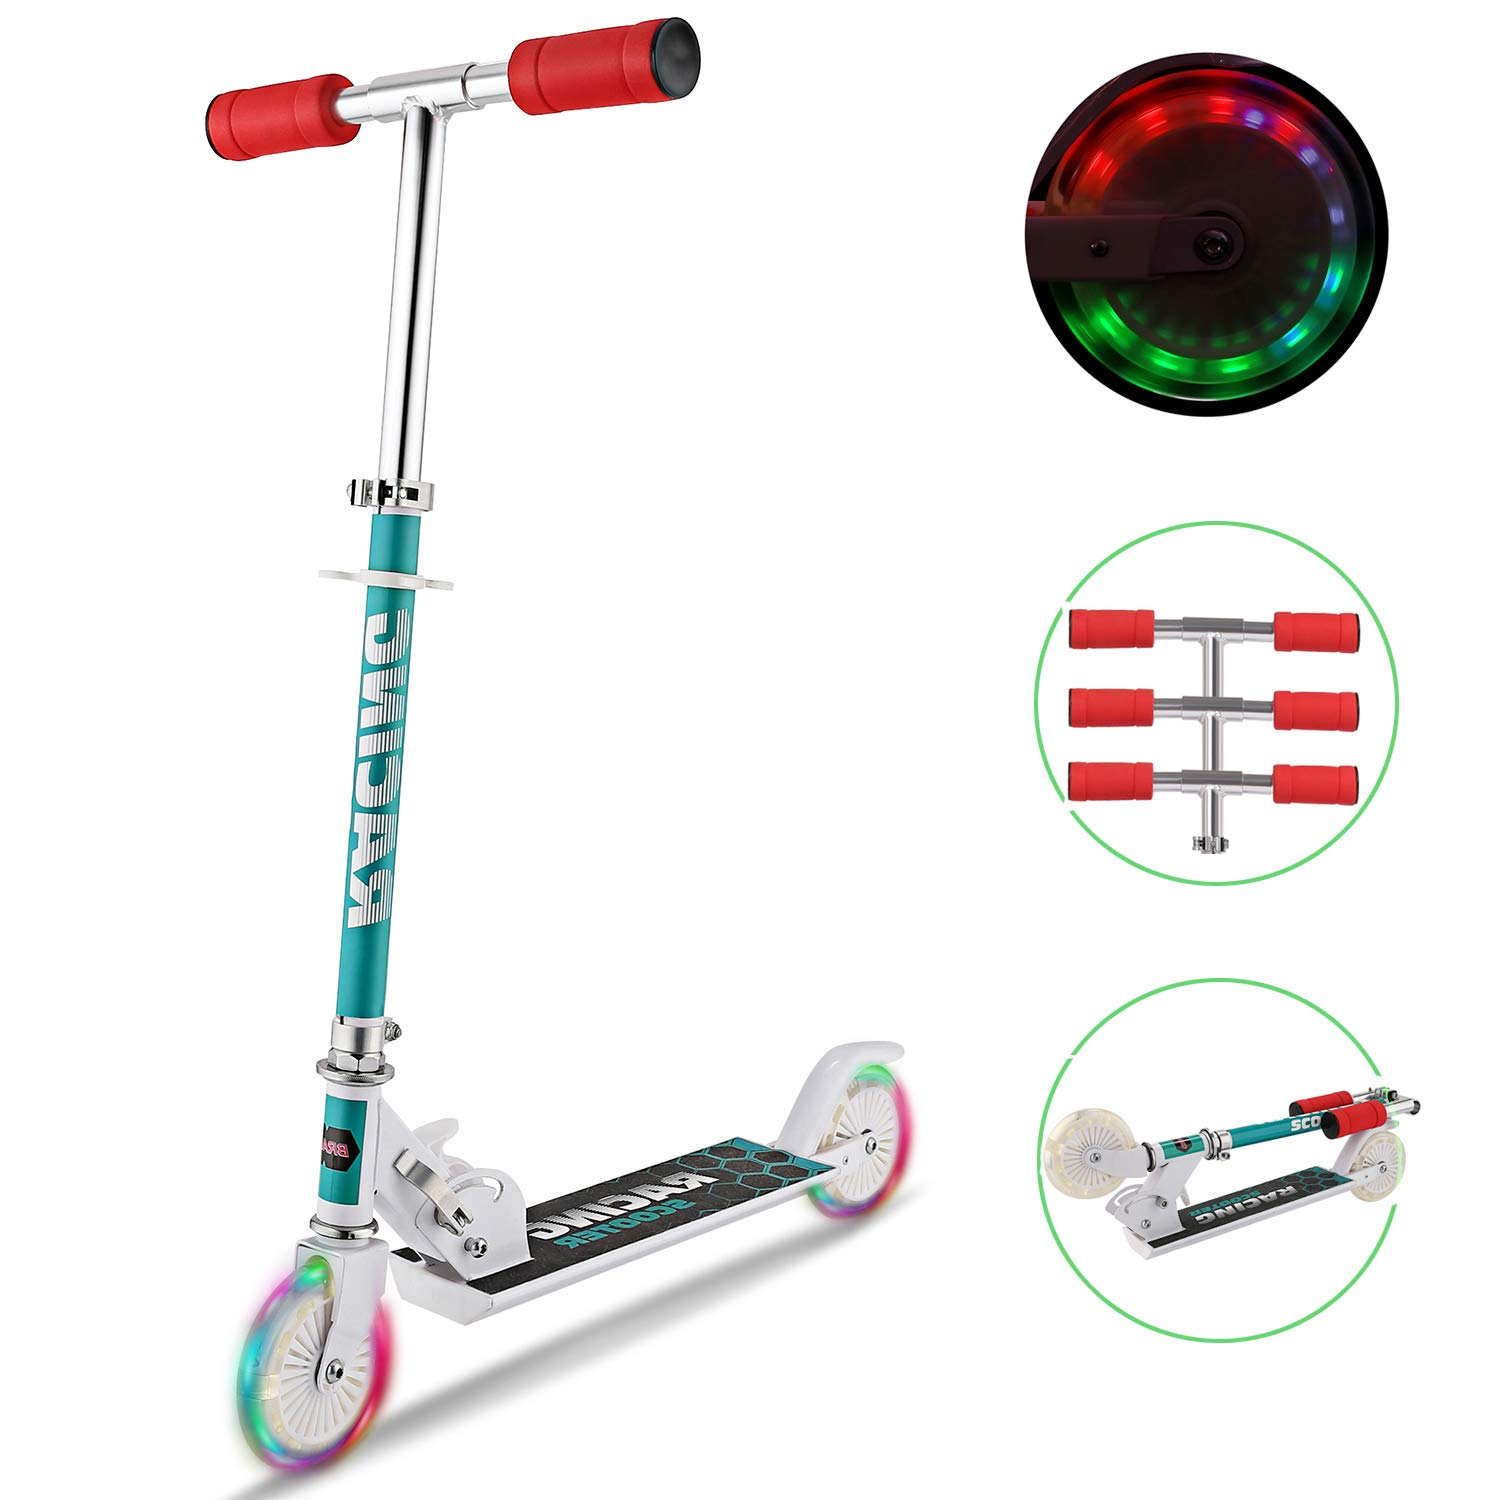 Tomasar Kid Scooters Foldable Mini Kick Scooter Aluminum Deluxe Light Up Wheels for Girls Boys, Ages 2-8 (US Stock) (White) by Tomasar